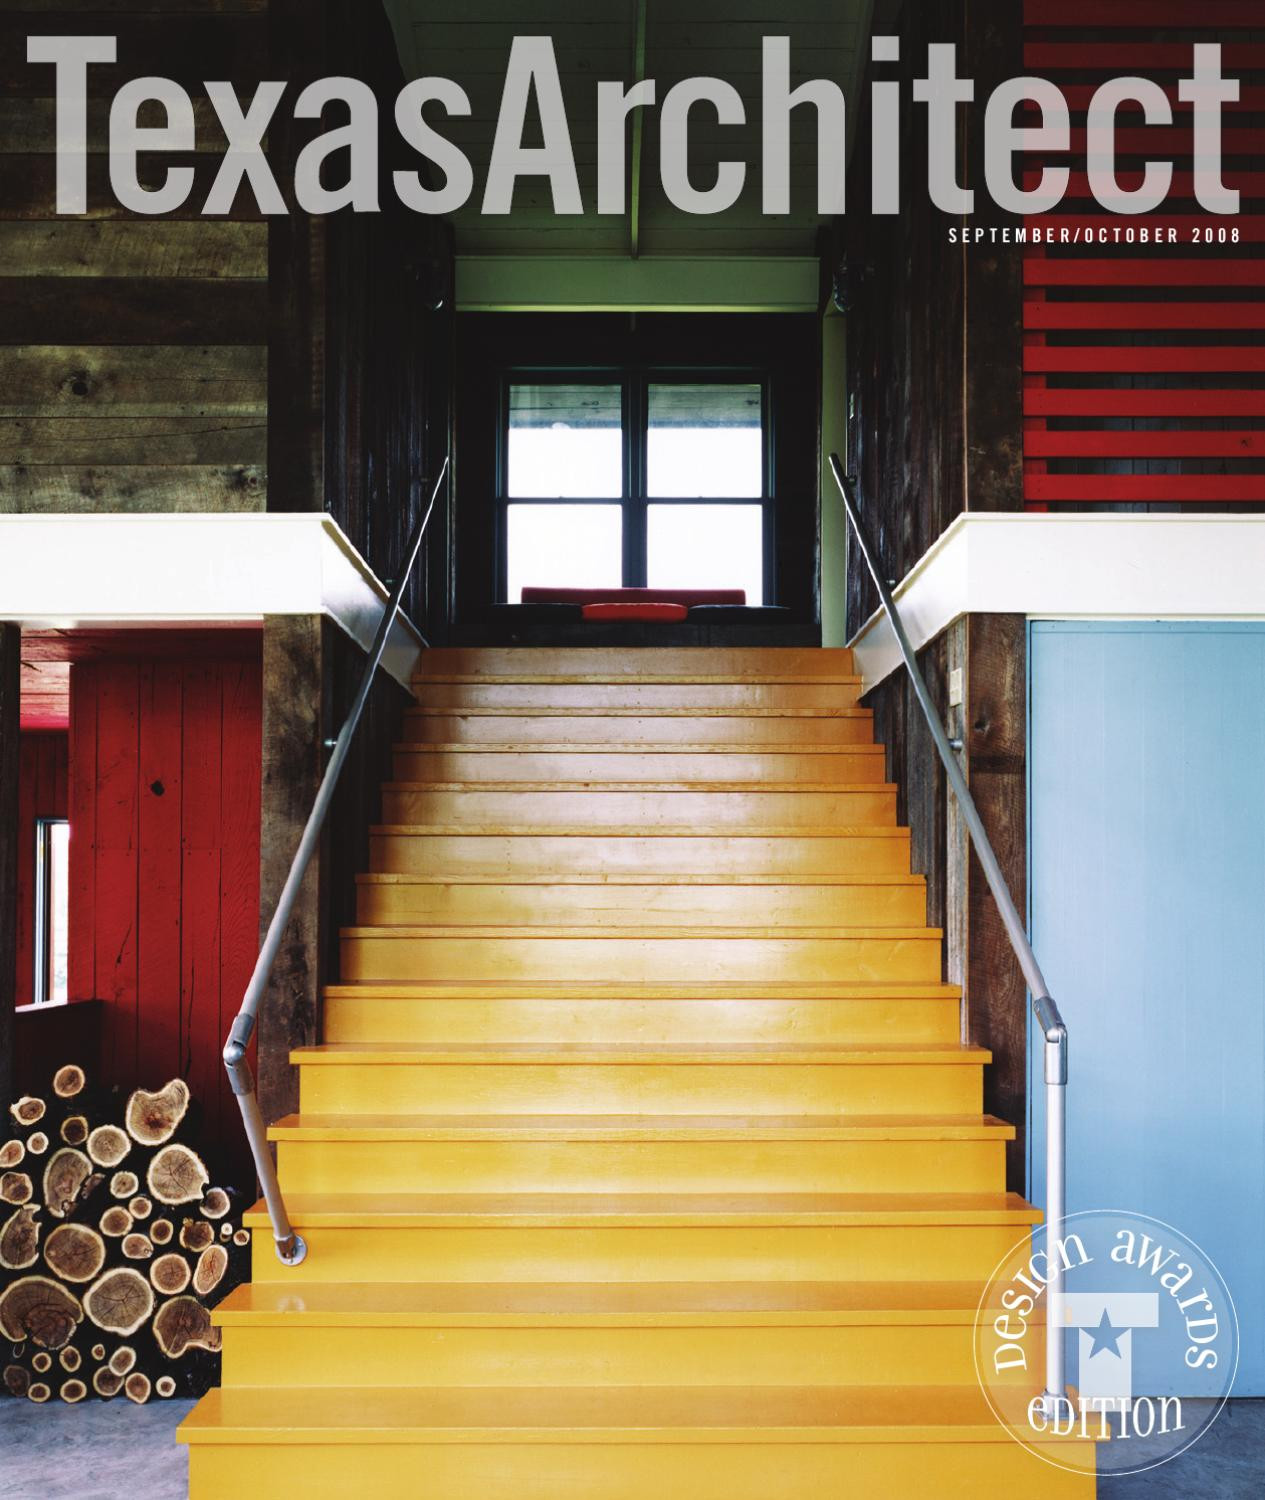 regal hardwood flooring reviews of texas architect sept oct 2008 design awards by texas society of with texas architect sept oct 2008 design awards by texas society of architects issuu